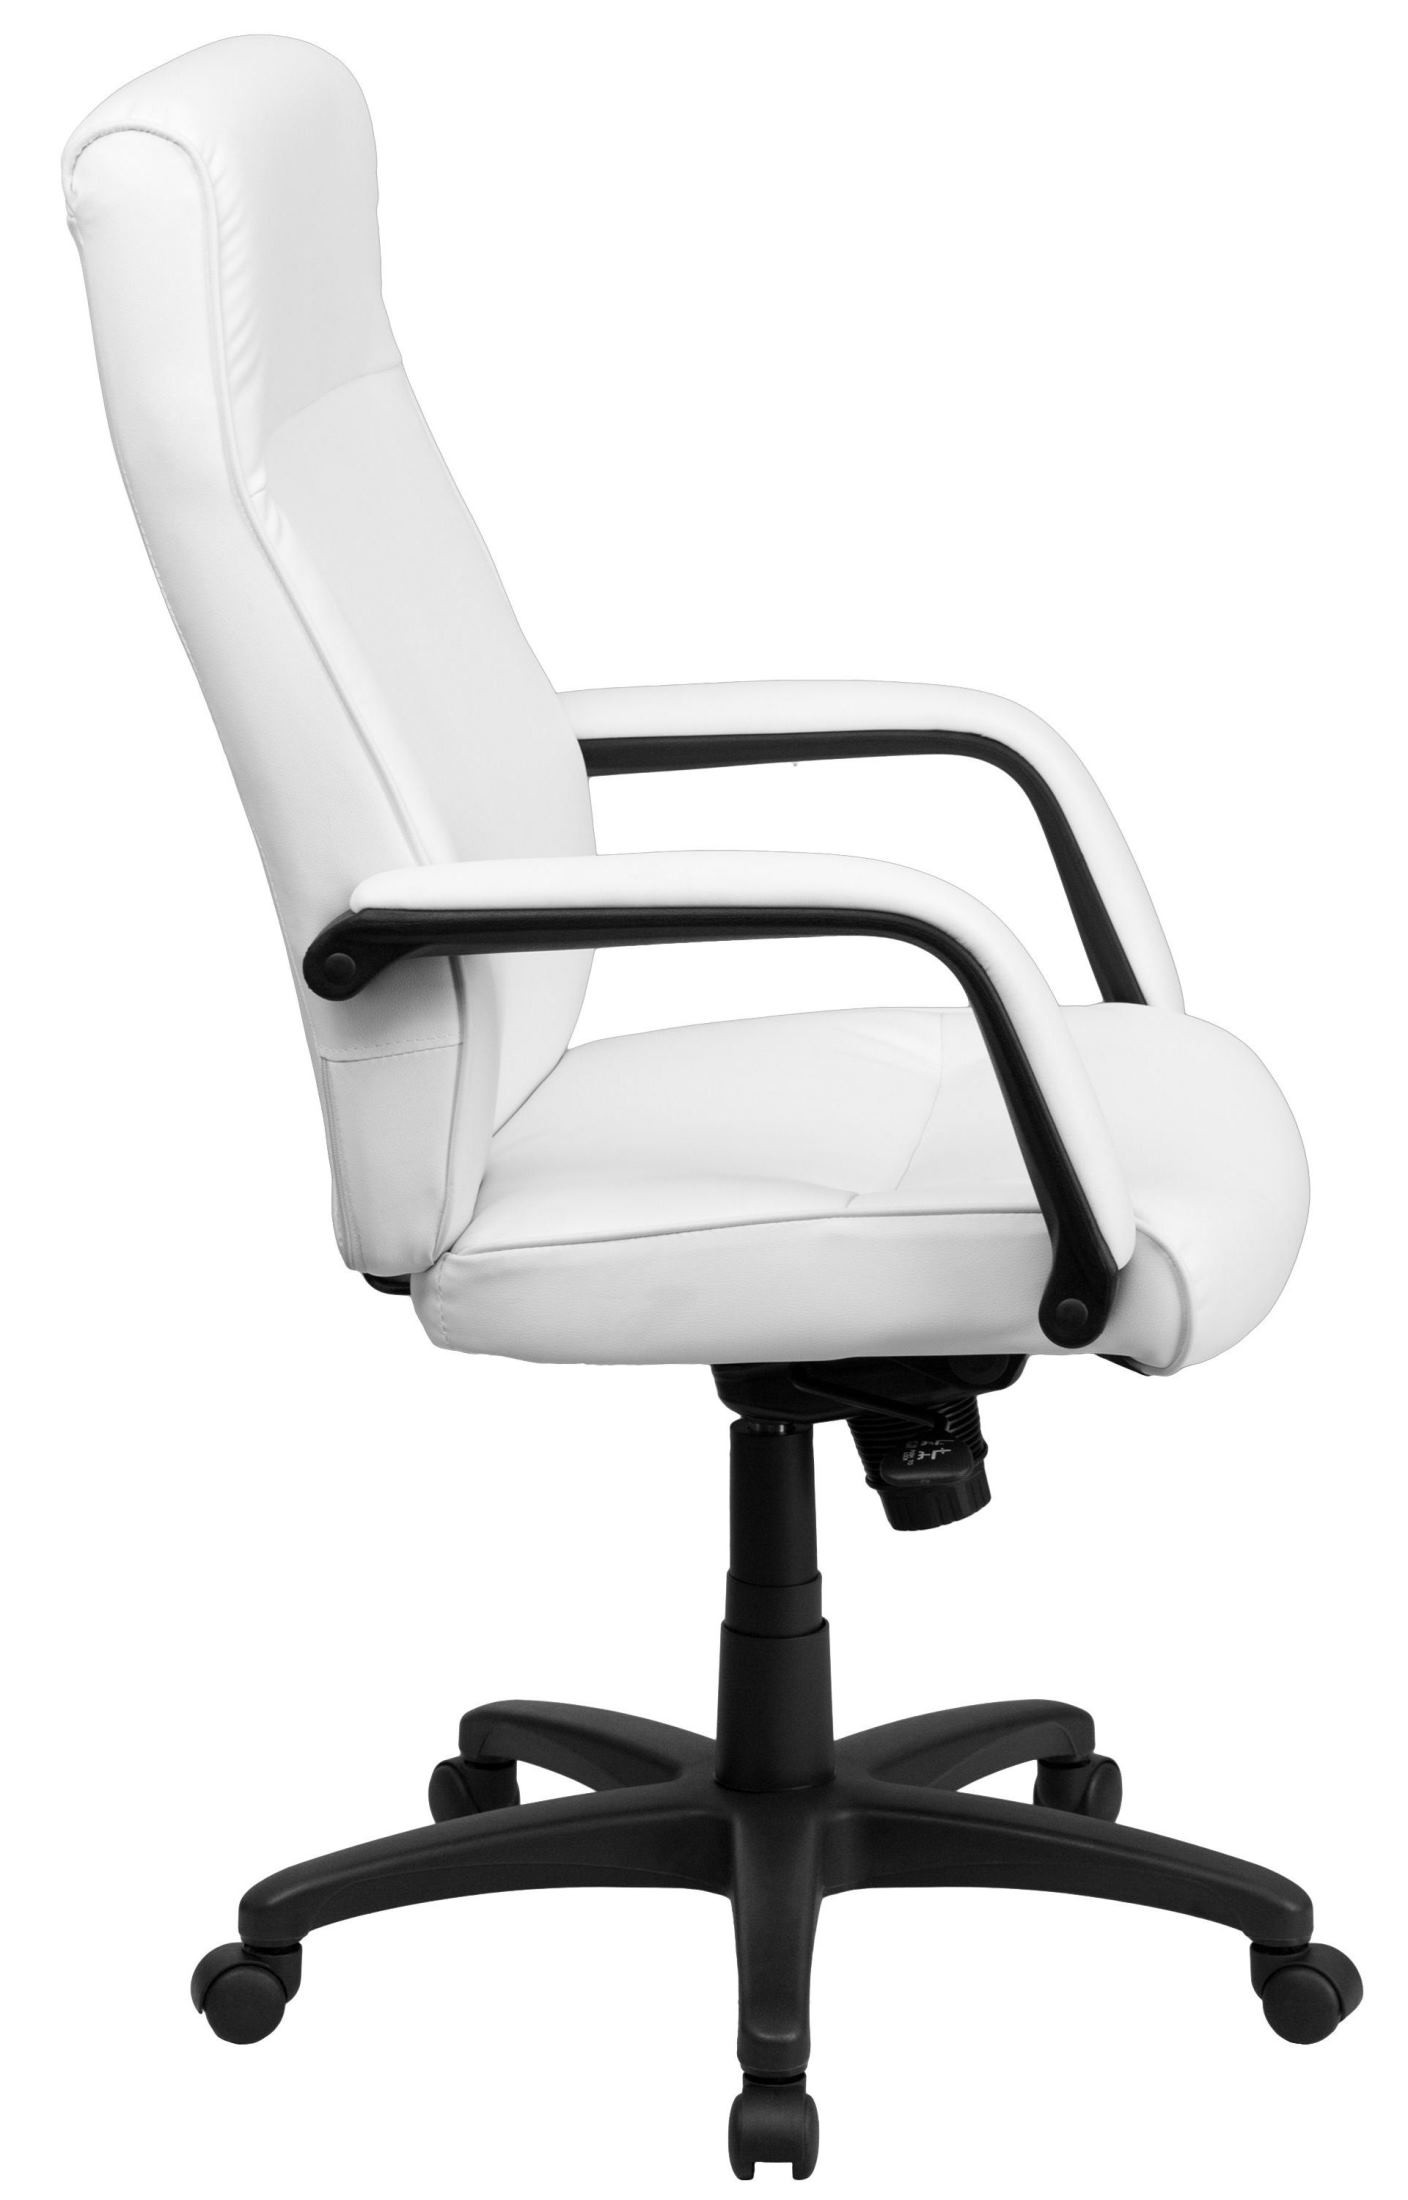 high back white leather executive office chair from renegade bt